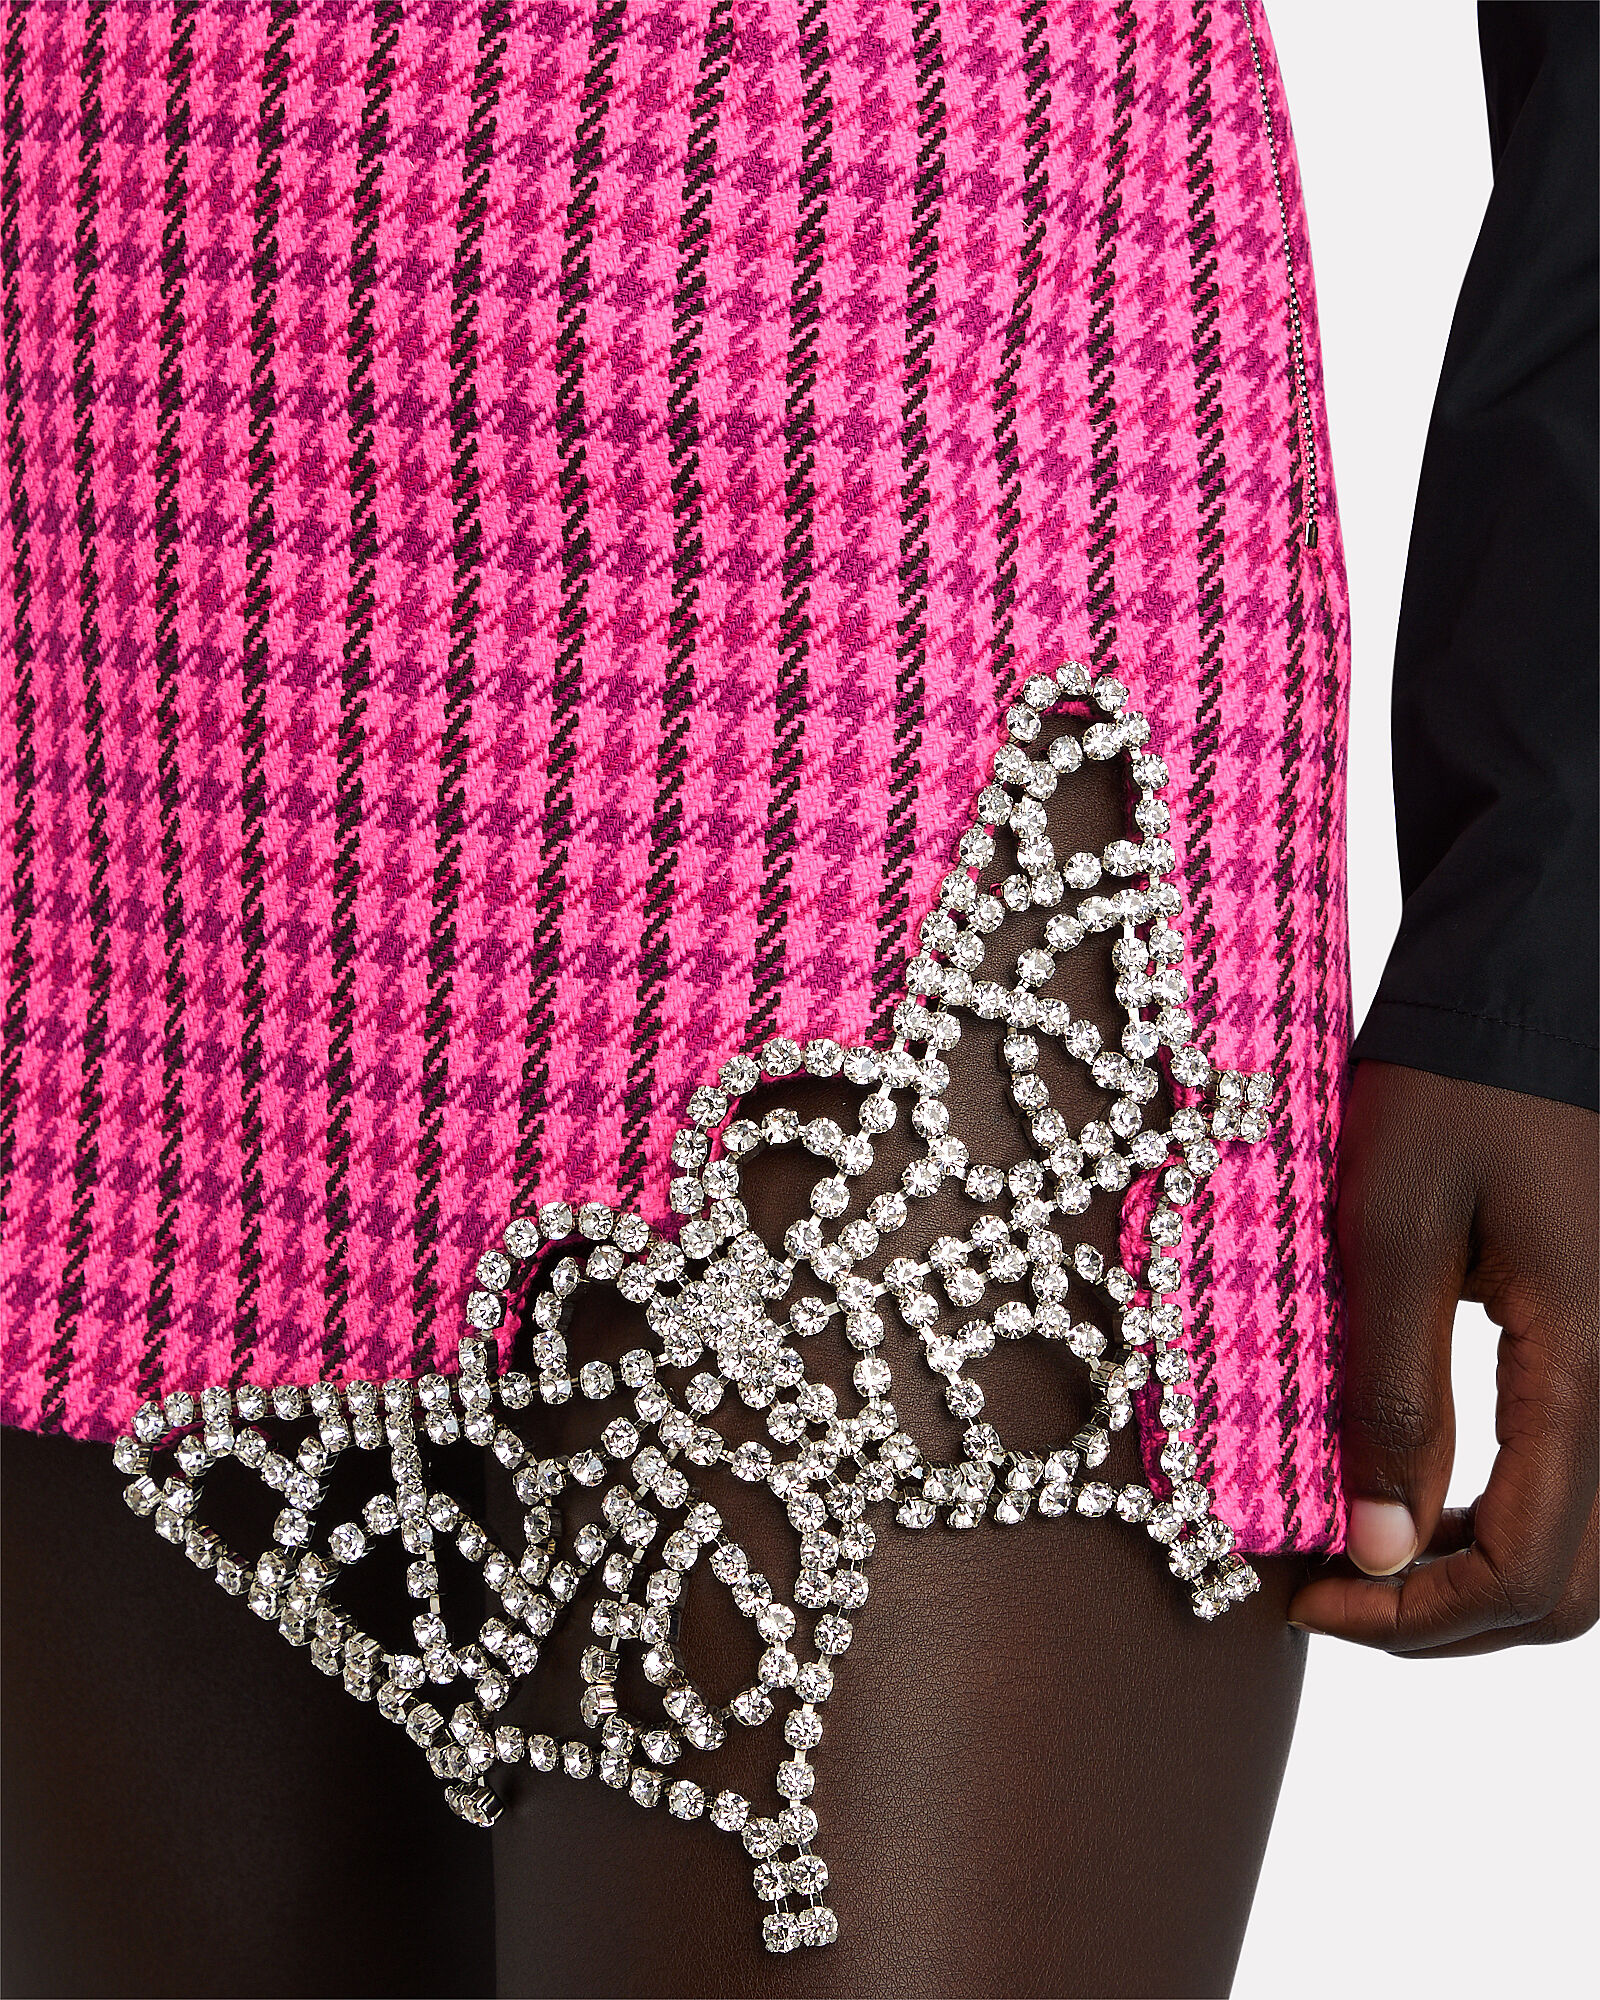 Crystal Butterfly Houndstooth Mini Skirt, PINK, hi-res